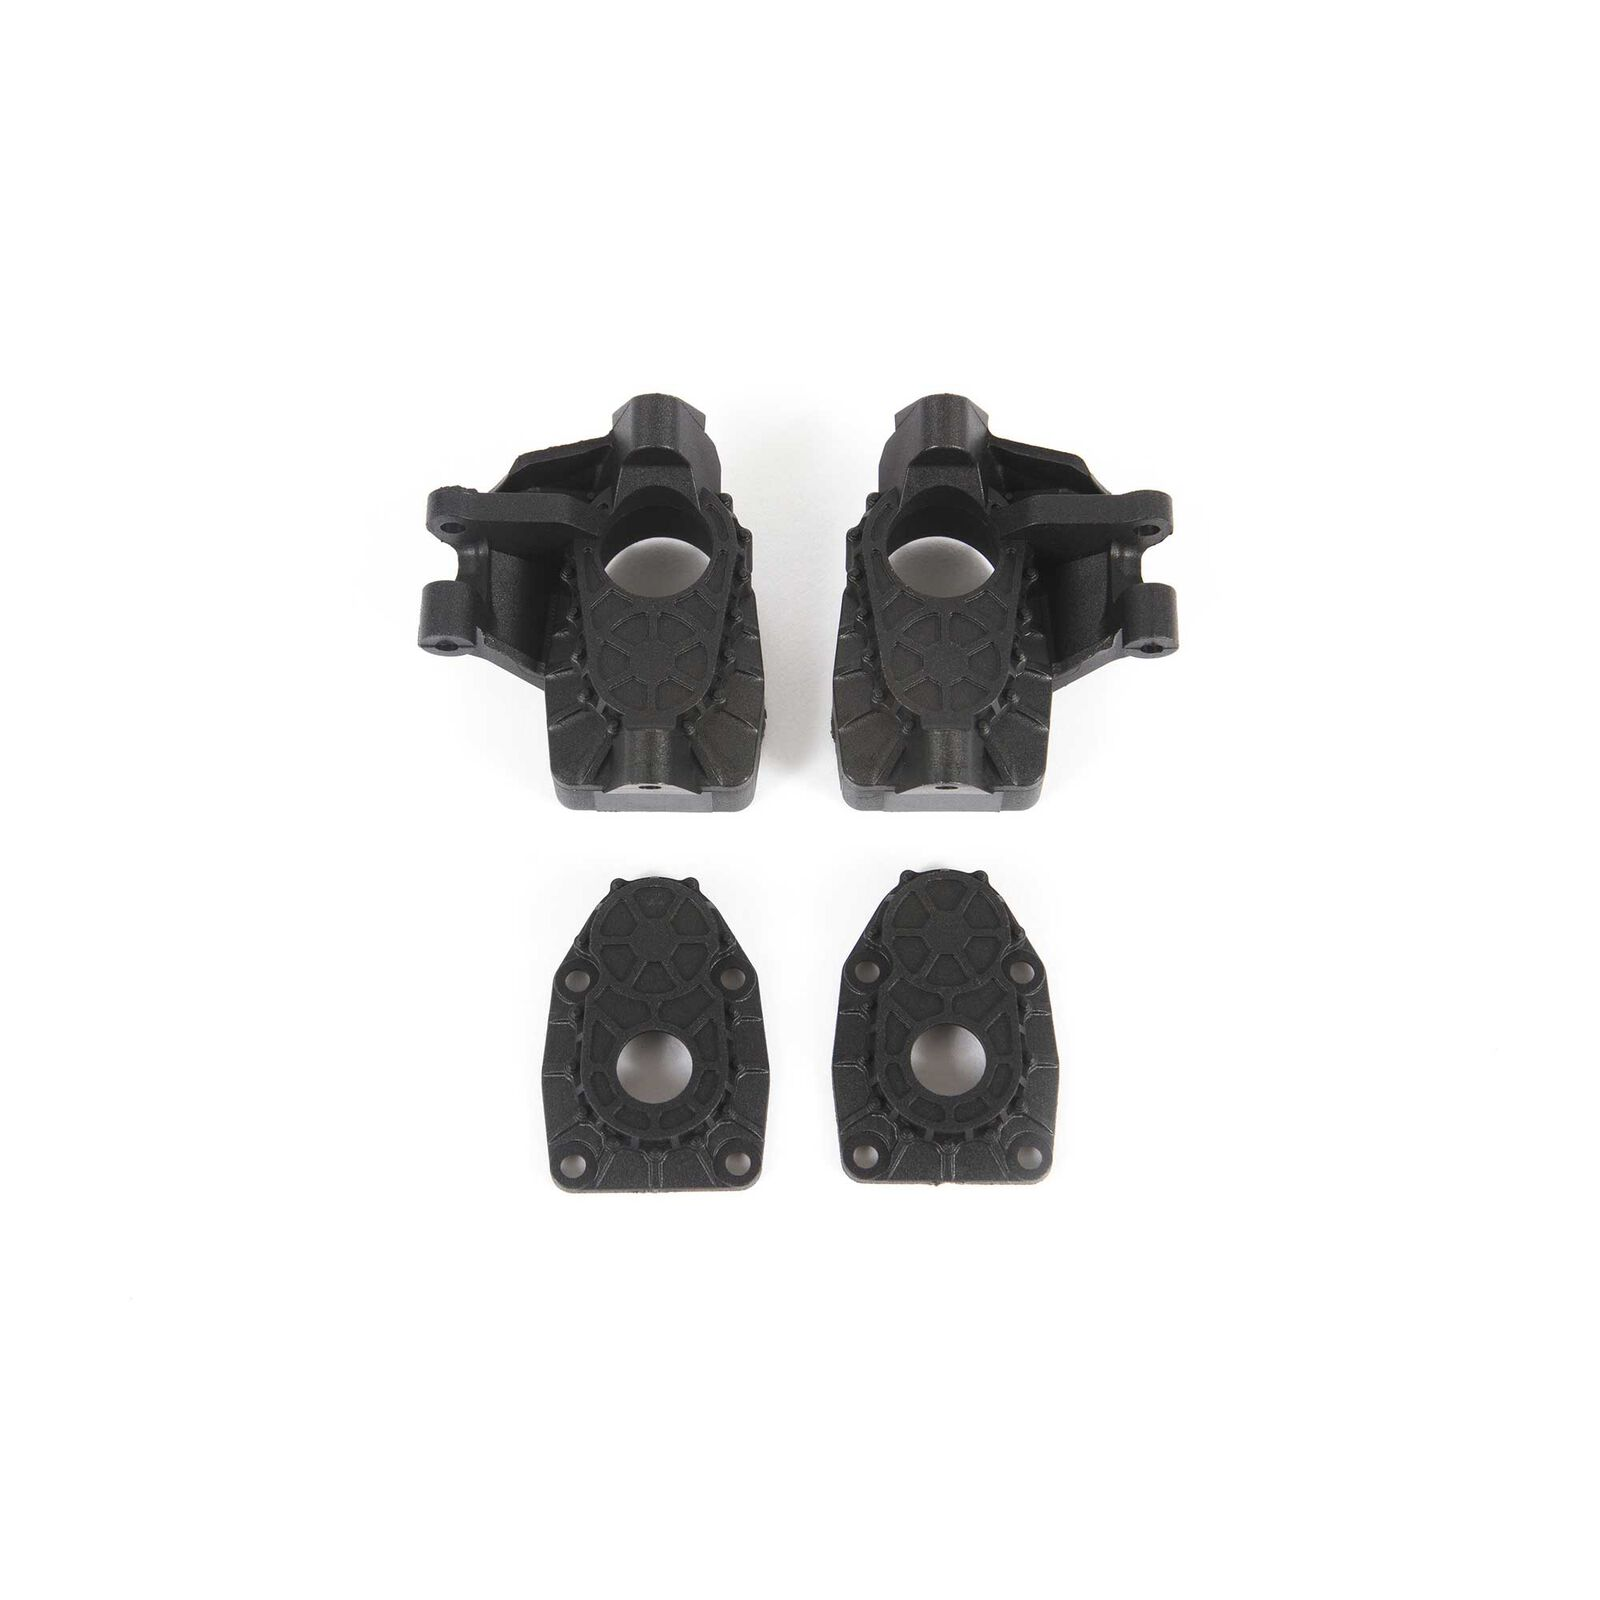 Currie F9 Portal Steering Knuckle Caps: Capra 1.9 UTB